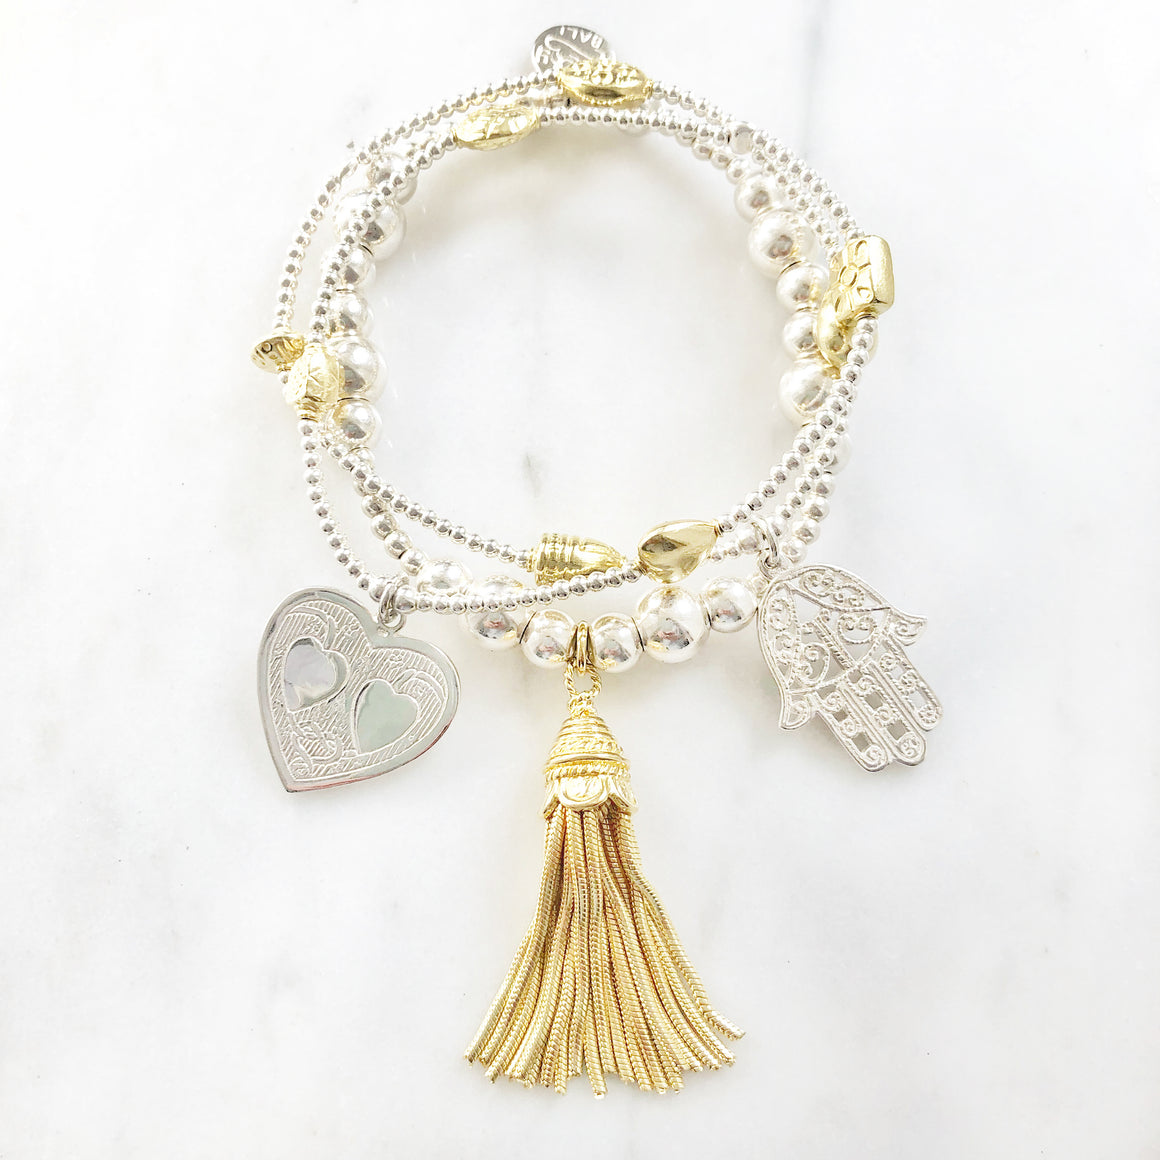 Love & Light 3-Bracelet Set